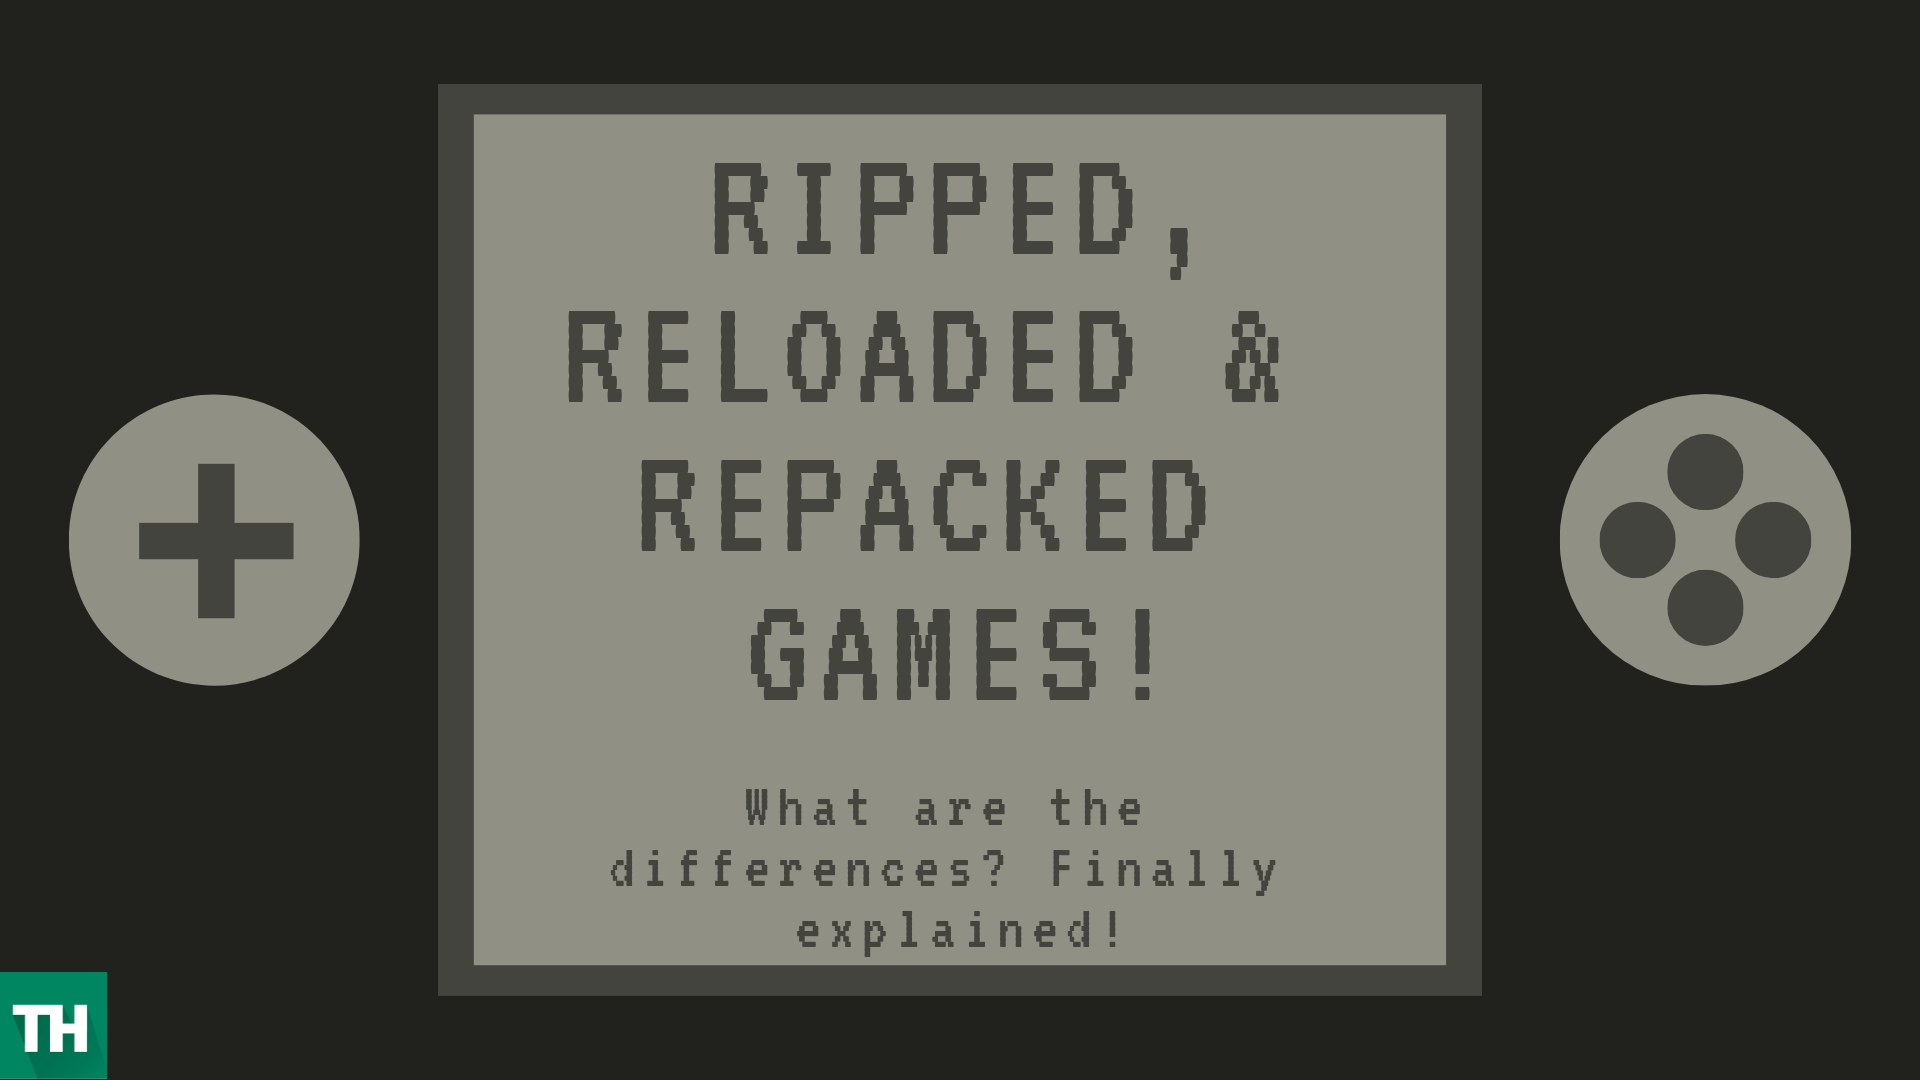 Ripped, Reloaded, Repack games